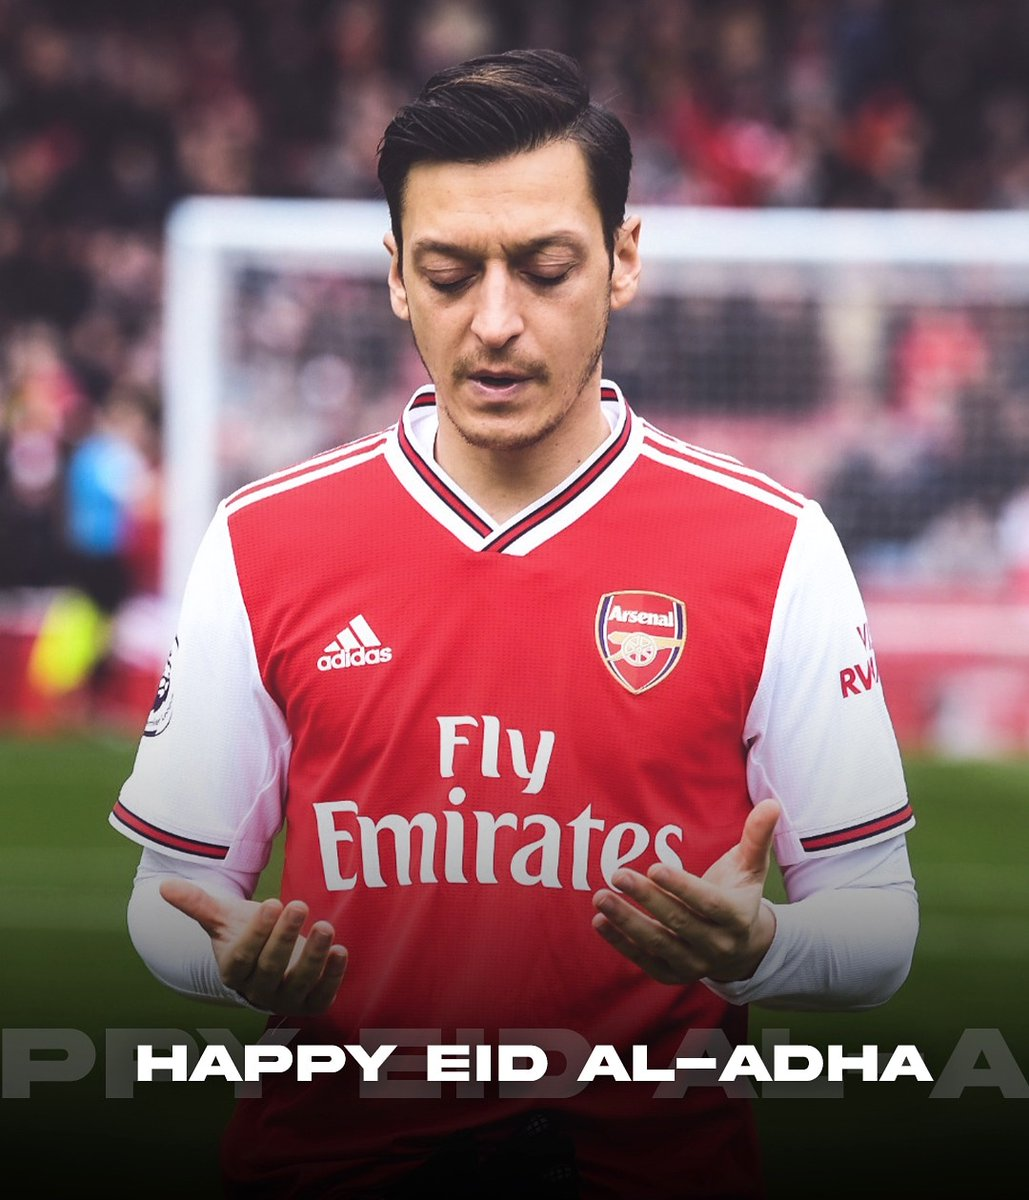 Happy Eid-al-Adha to all my Muslim brothers & sisters. 🕌 May everyone in the world stay safe and well during these difficult times. 🤲🏼❤️ Kurban Bayramımız kutlu olsun! #M1Ö https://t.co/21y23bwHzY